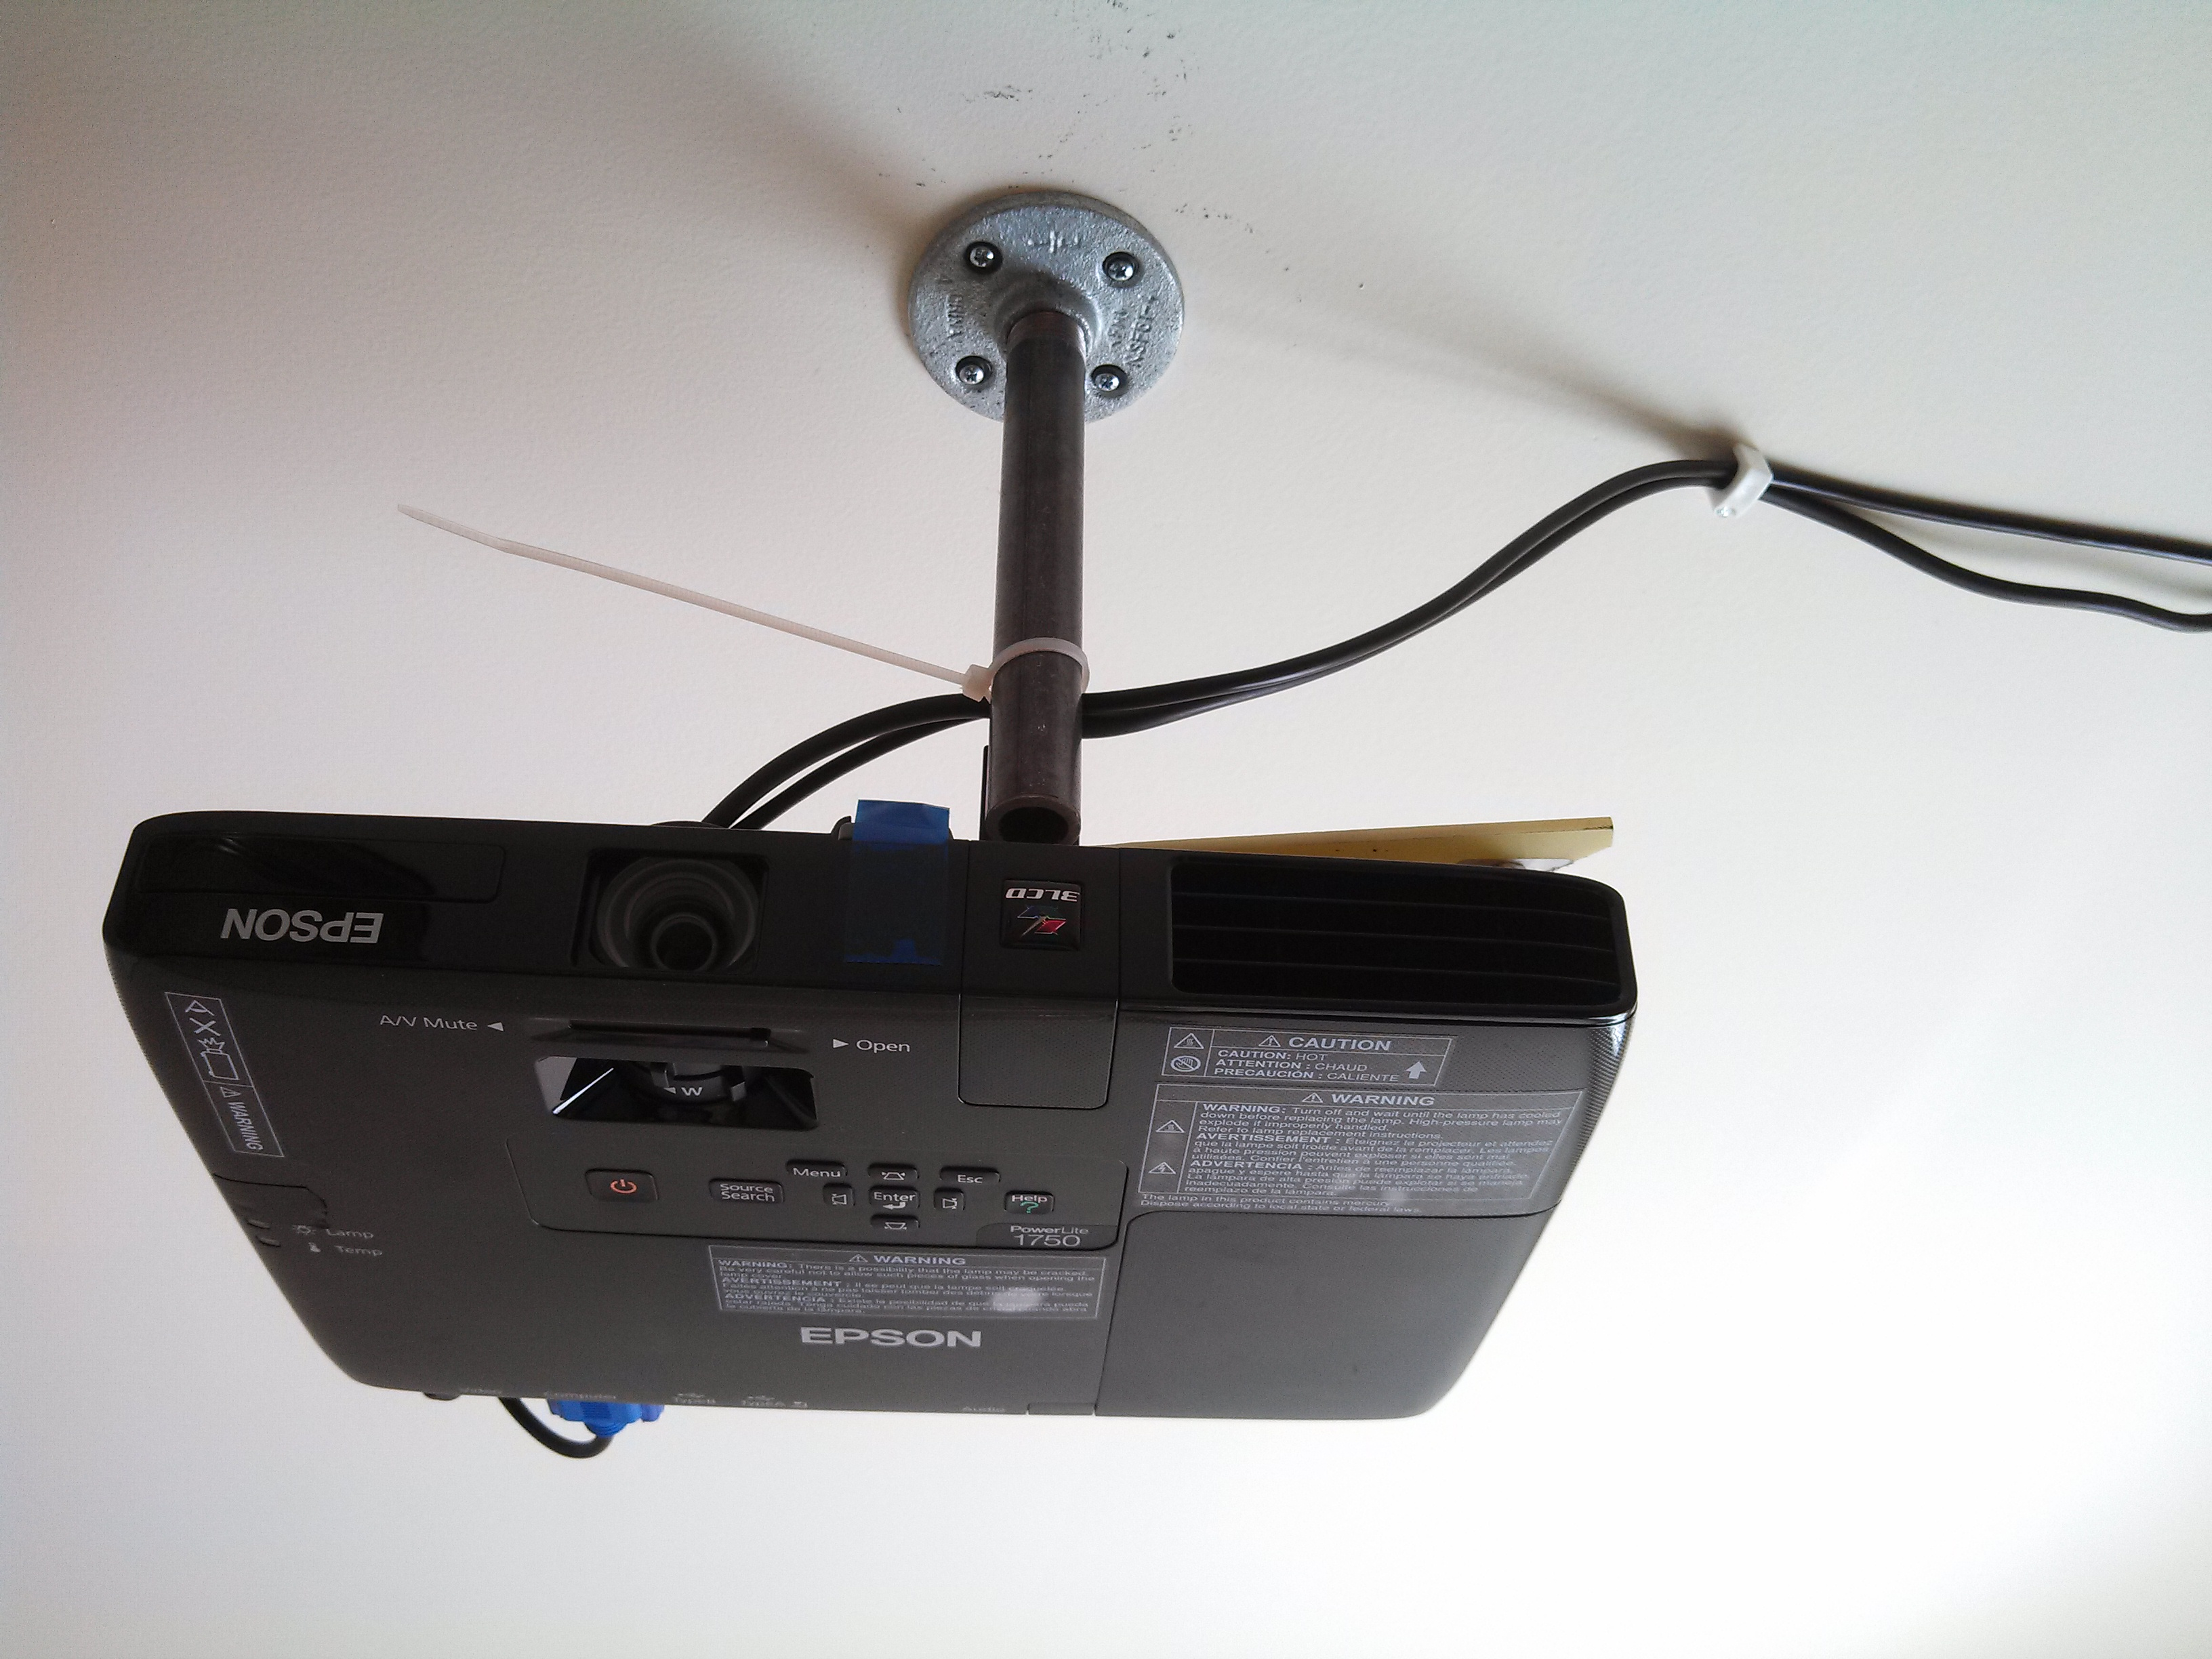 DIY Low Cost Porjector Ceiling Mount (with Pictures)